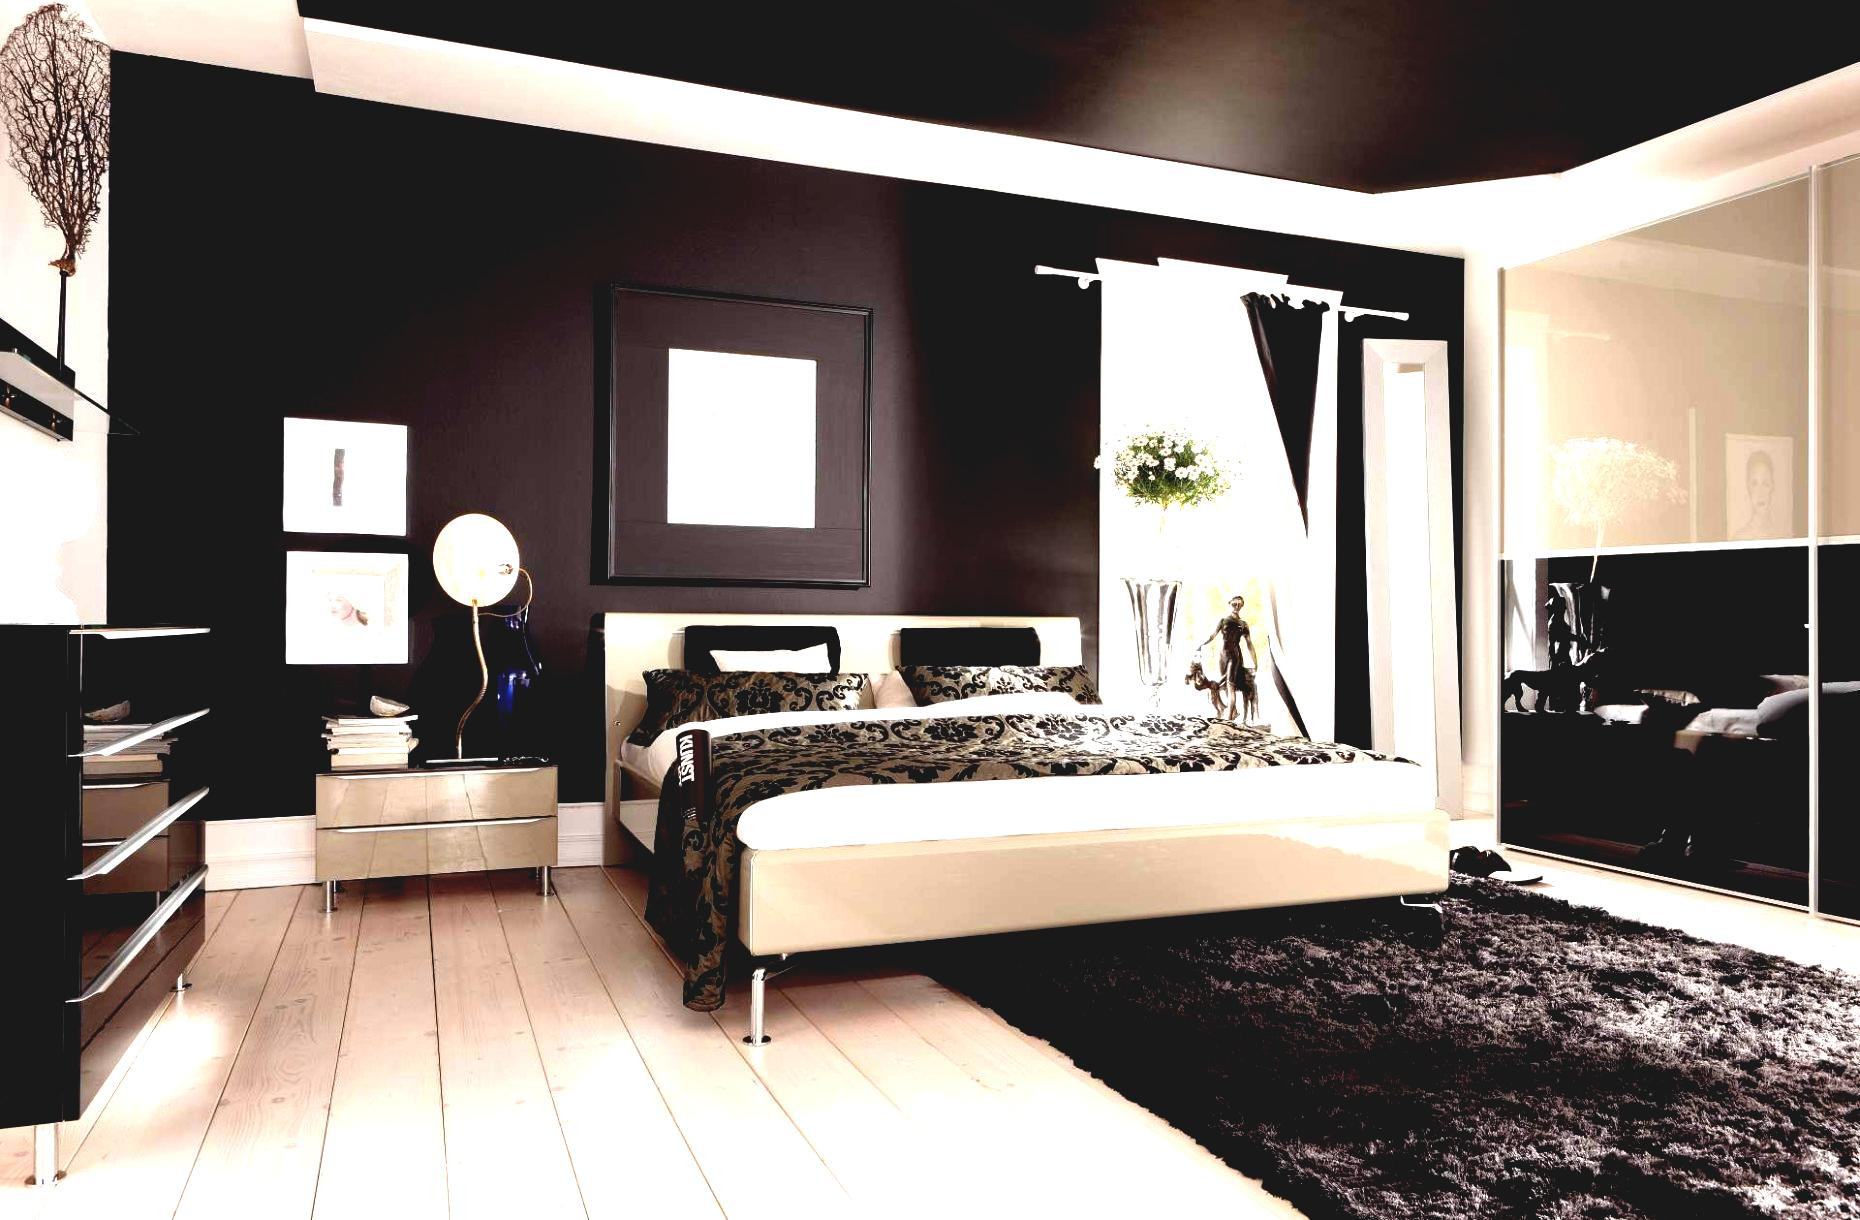 Best ideas about Bedroom Paint Color Ideas . Save or Pin Best Creative Master Bedroom Rustic Color Ideas Now.